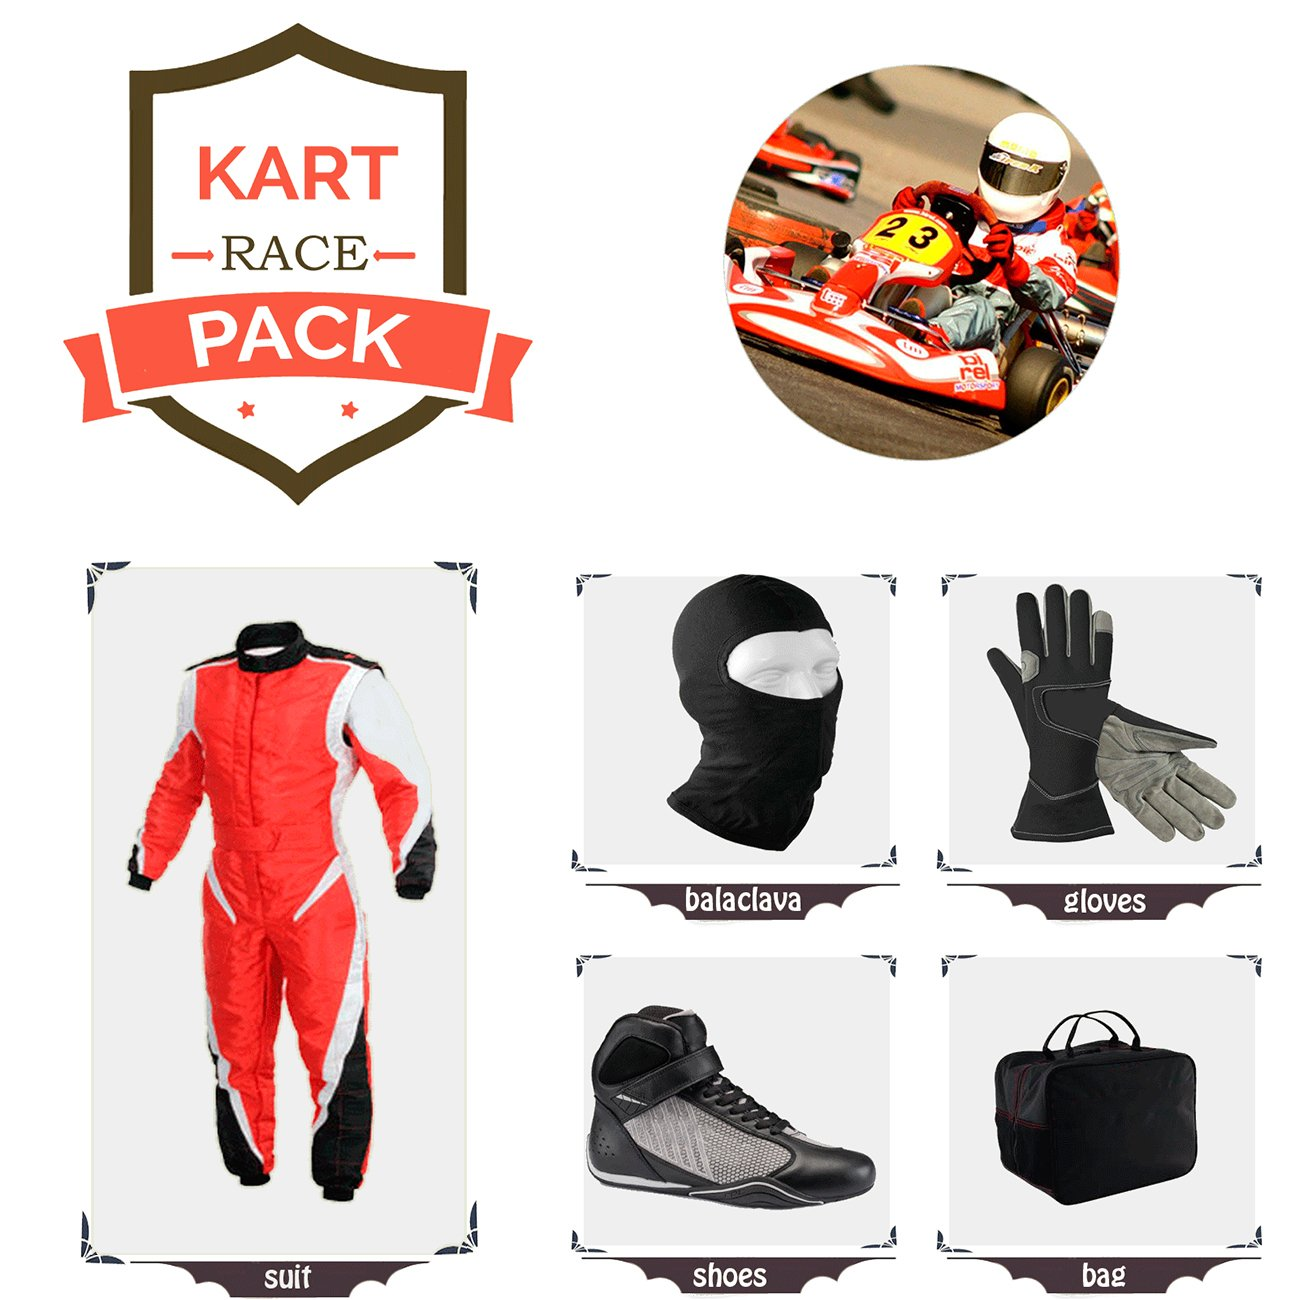 Sports Blue Go Kart Racing Suit Suit,Gloves,Balaclava and Shoes Free Bag - Red with Black Style by Sports Blue